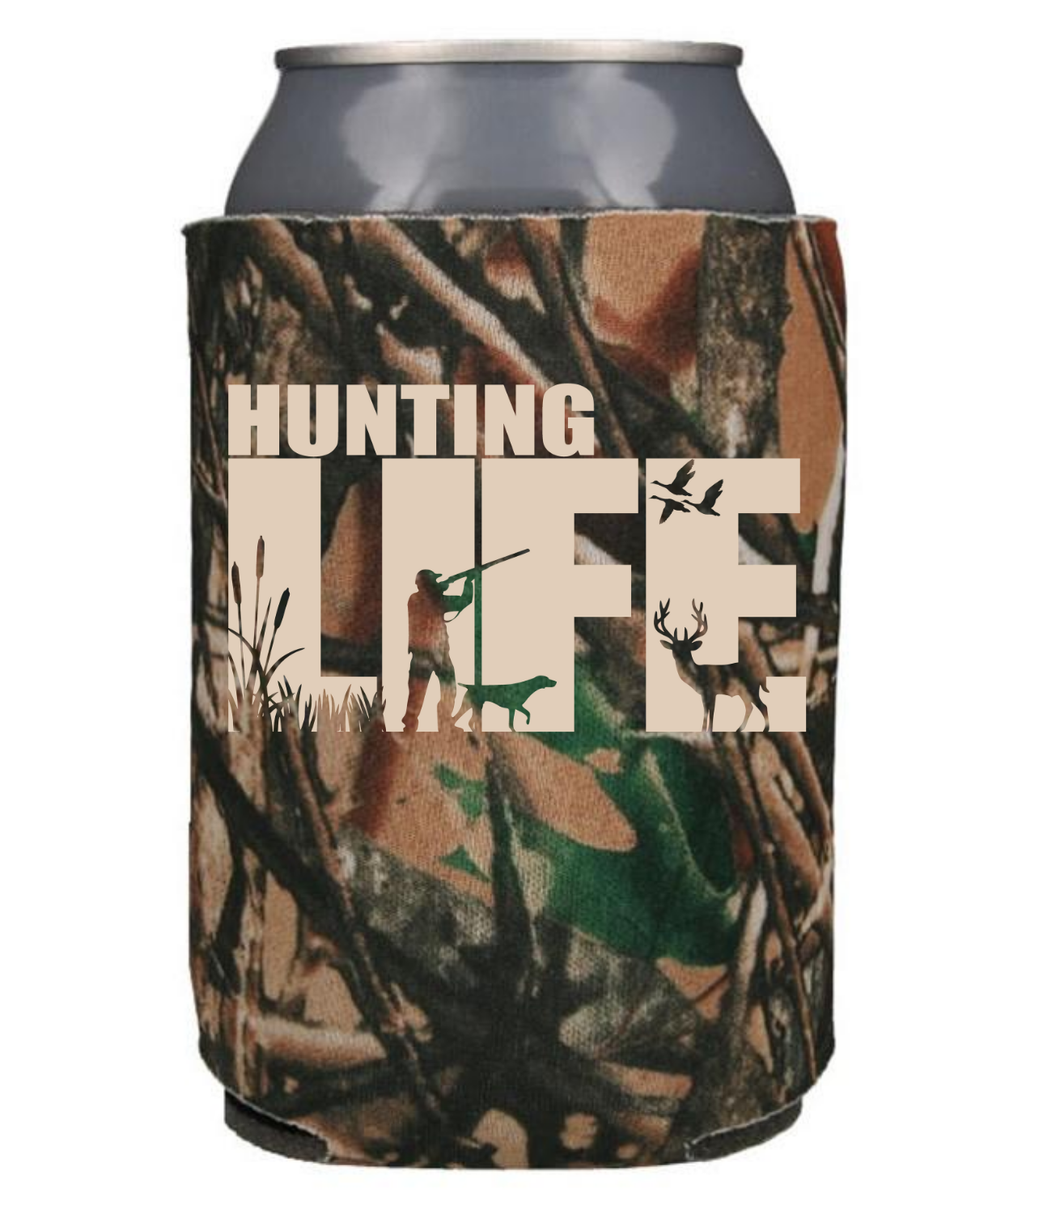 Hunting Life - Camo with tan design - Can Cooler Koozie